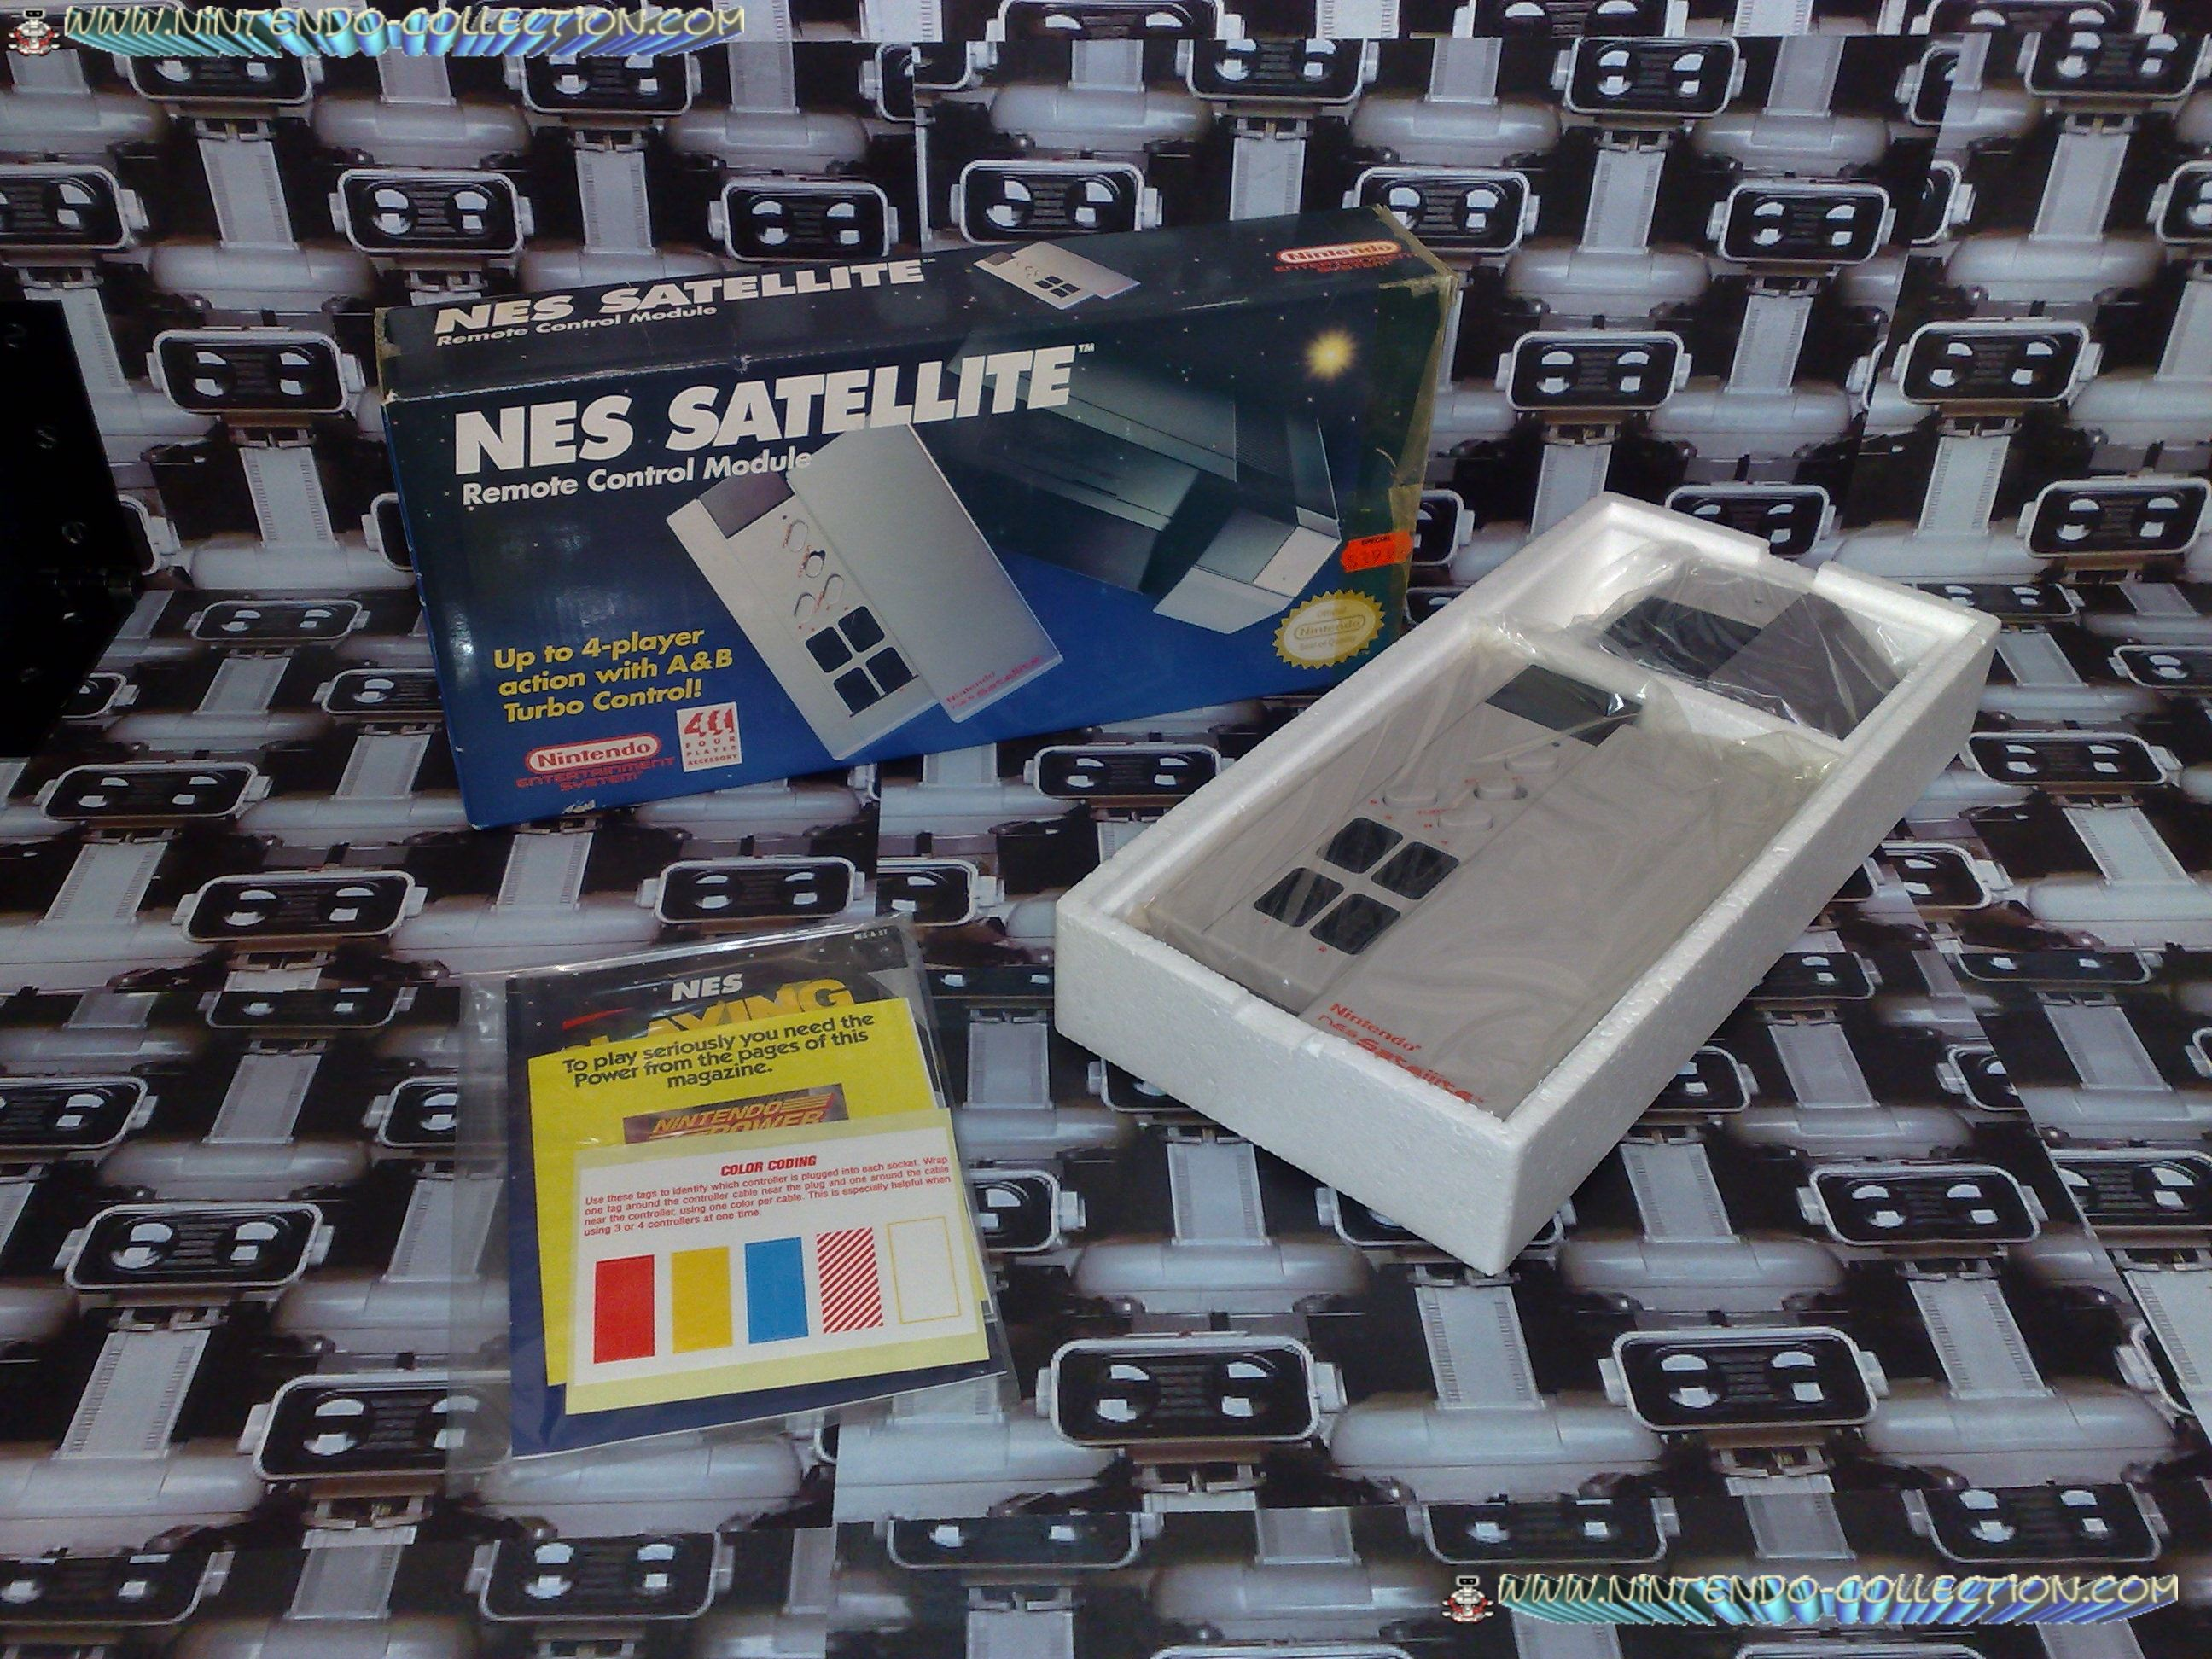 www.nintendo-collection.com - Nintendo NES Satellite - Accessoire en boite US- Accesory in box US